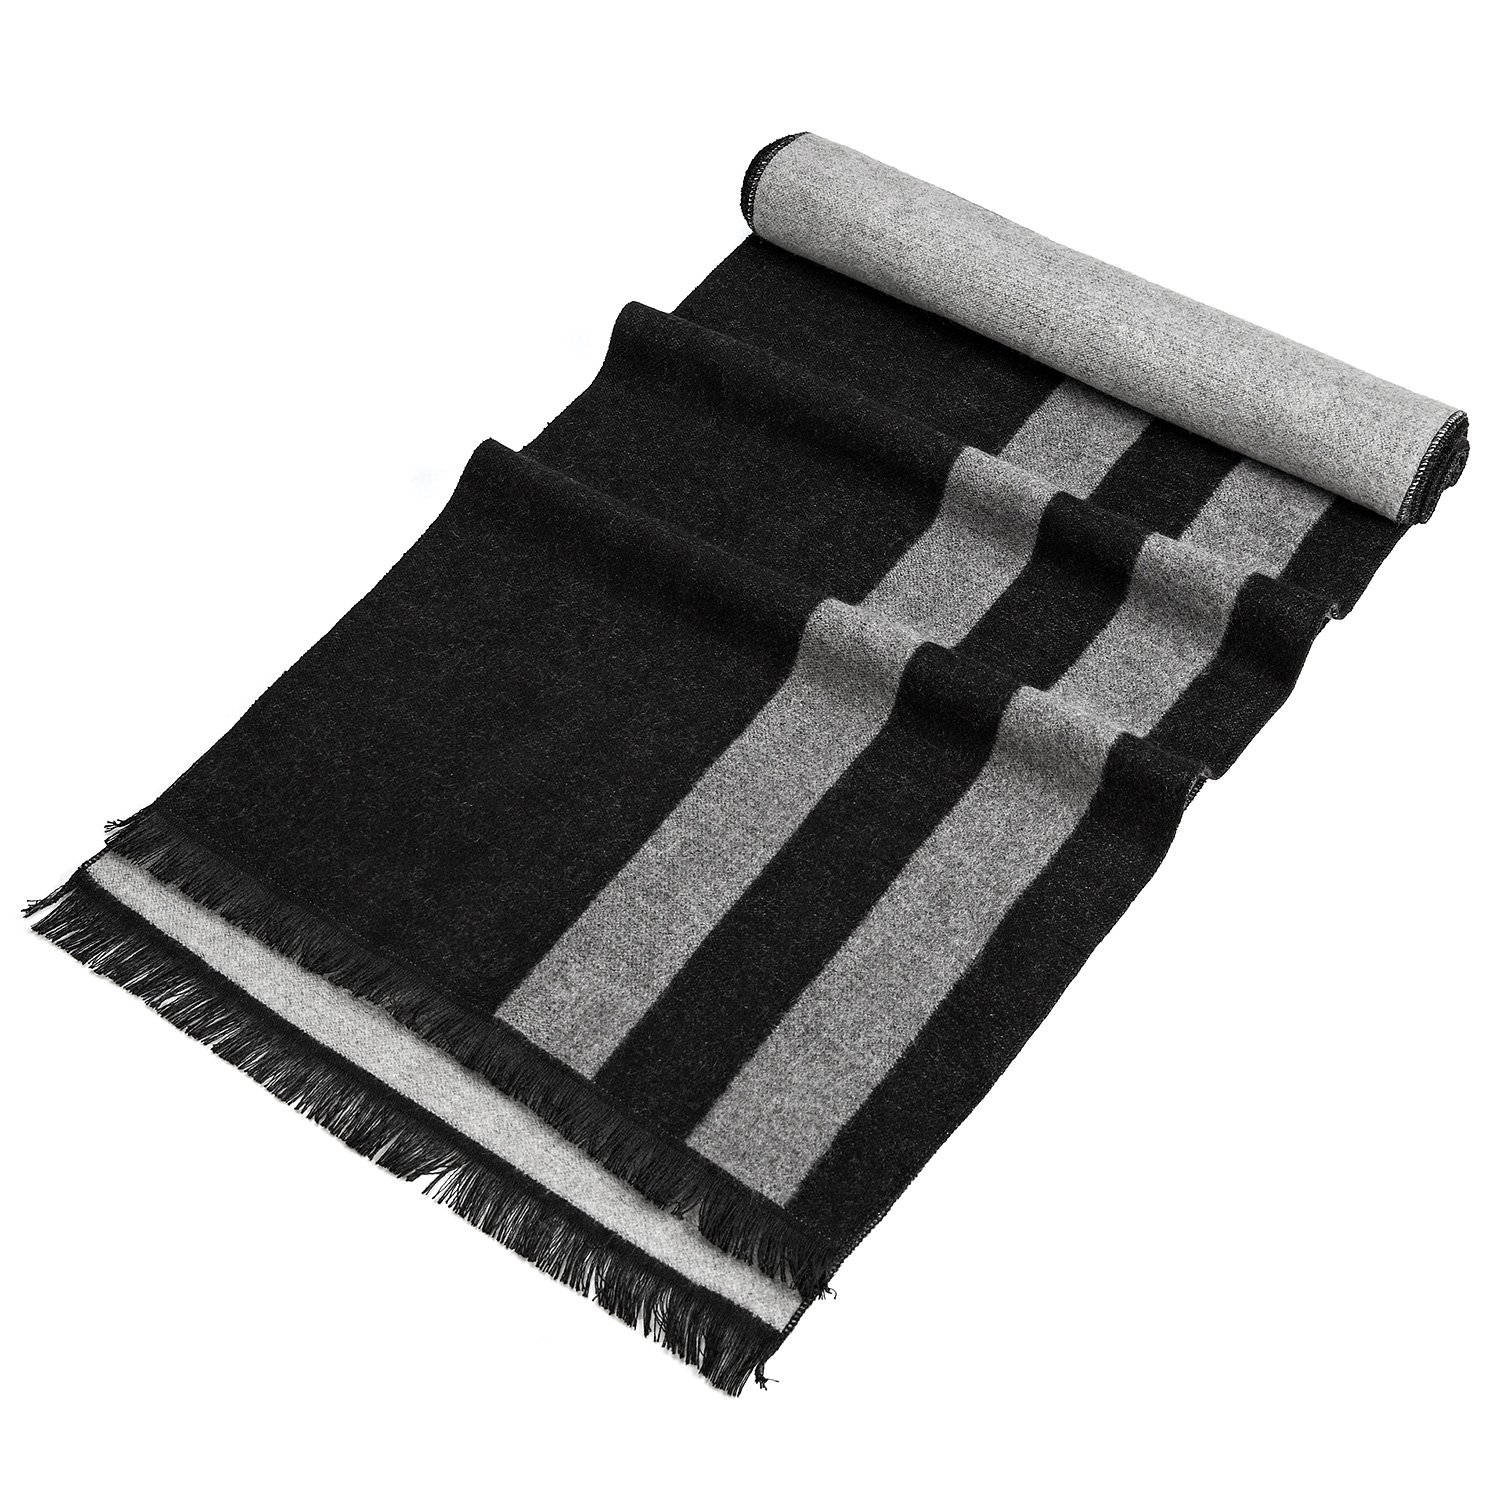 Warm Autumn and Winter Scarf,VICWARM Mens Classic and Elegant Plaid Scarves